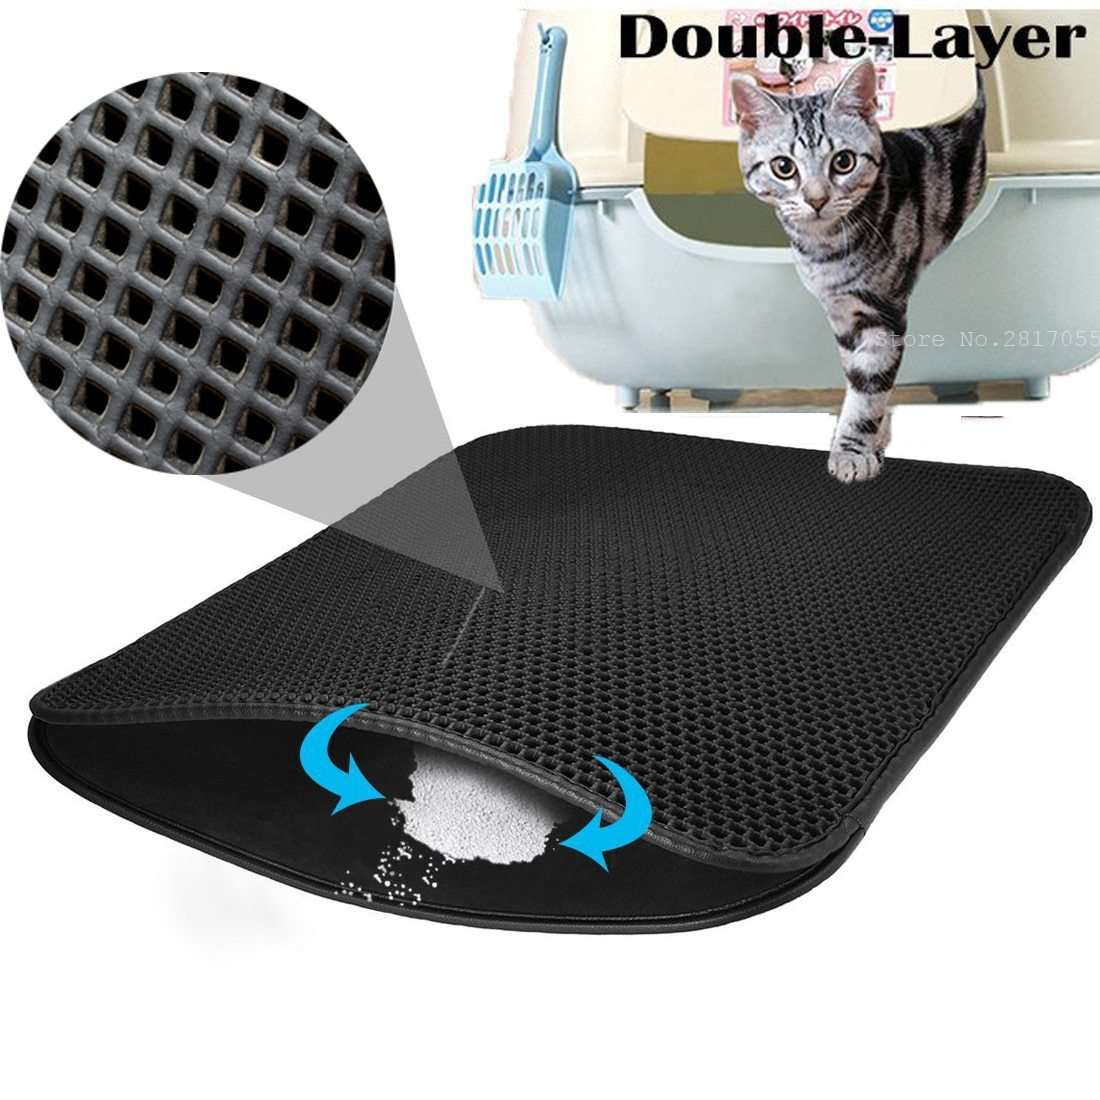 Double Layer Waterproof Cat Litter Mat - Discounts You May Like